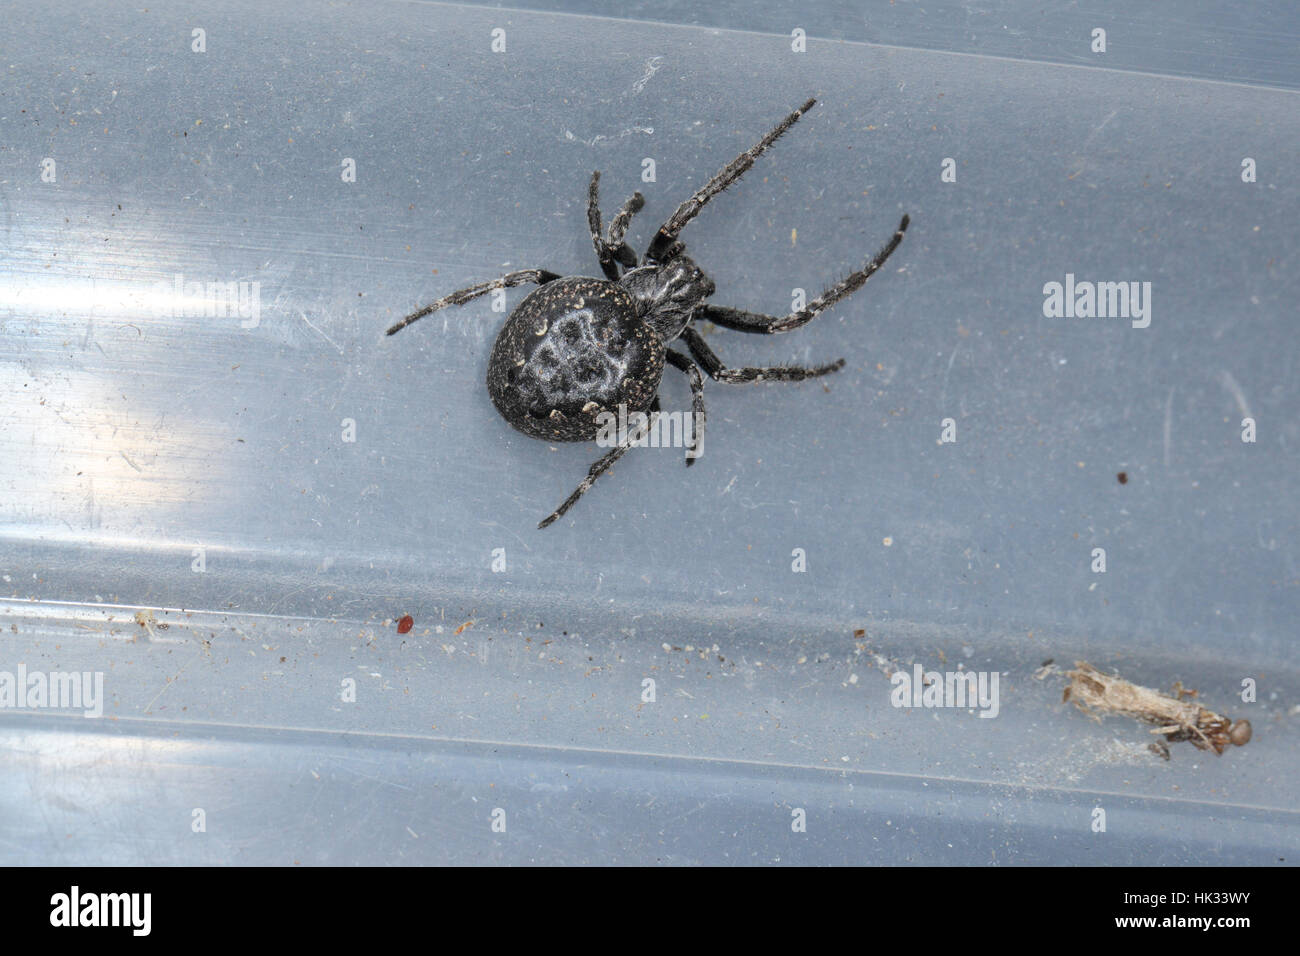 Walnut Orb-weaver Spider (Nuctenea umbratica), a large black garden spider with a swollen abdomen, on a grey plastic - Stock Image